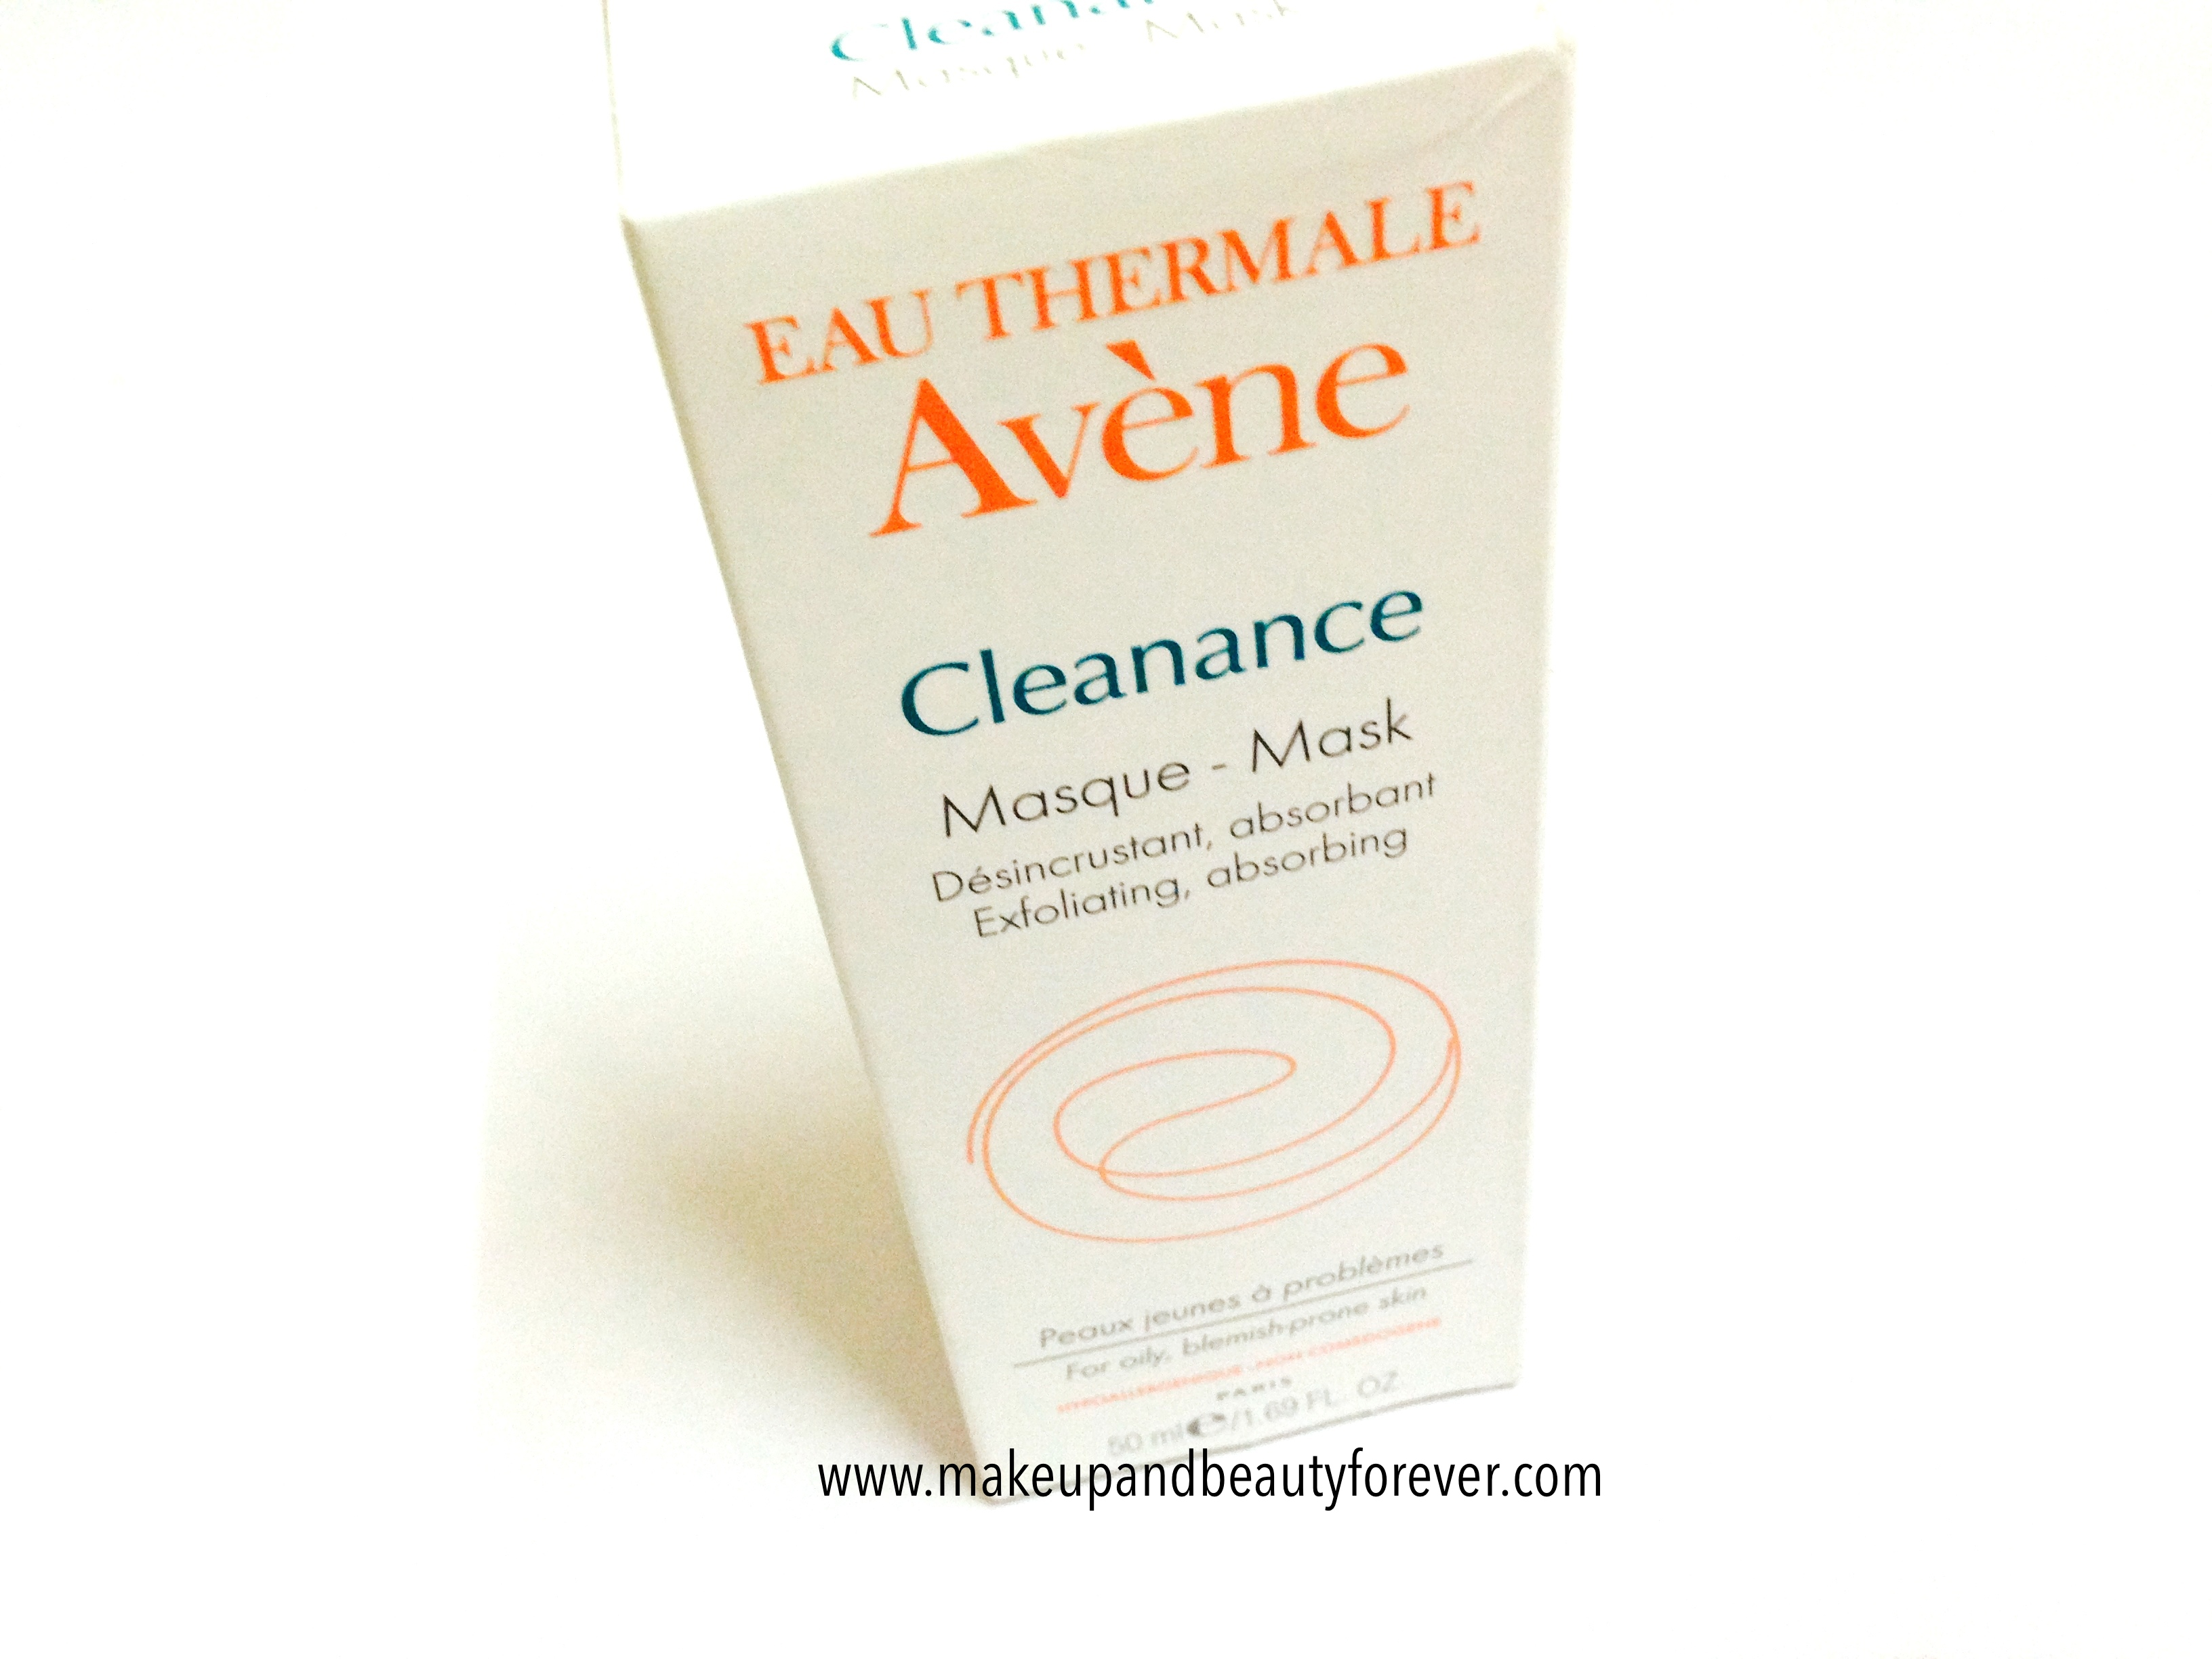 eau thermale avene cleanance masque mask makeup and. Black Bedroom Furniture Sets. Home Design Ideas